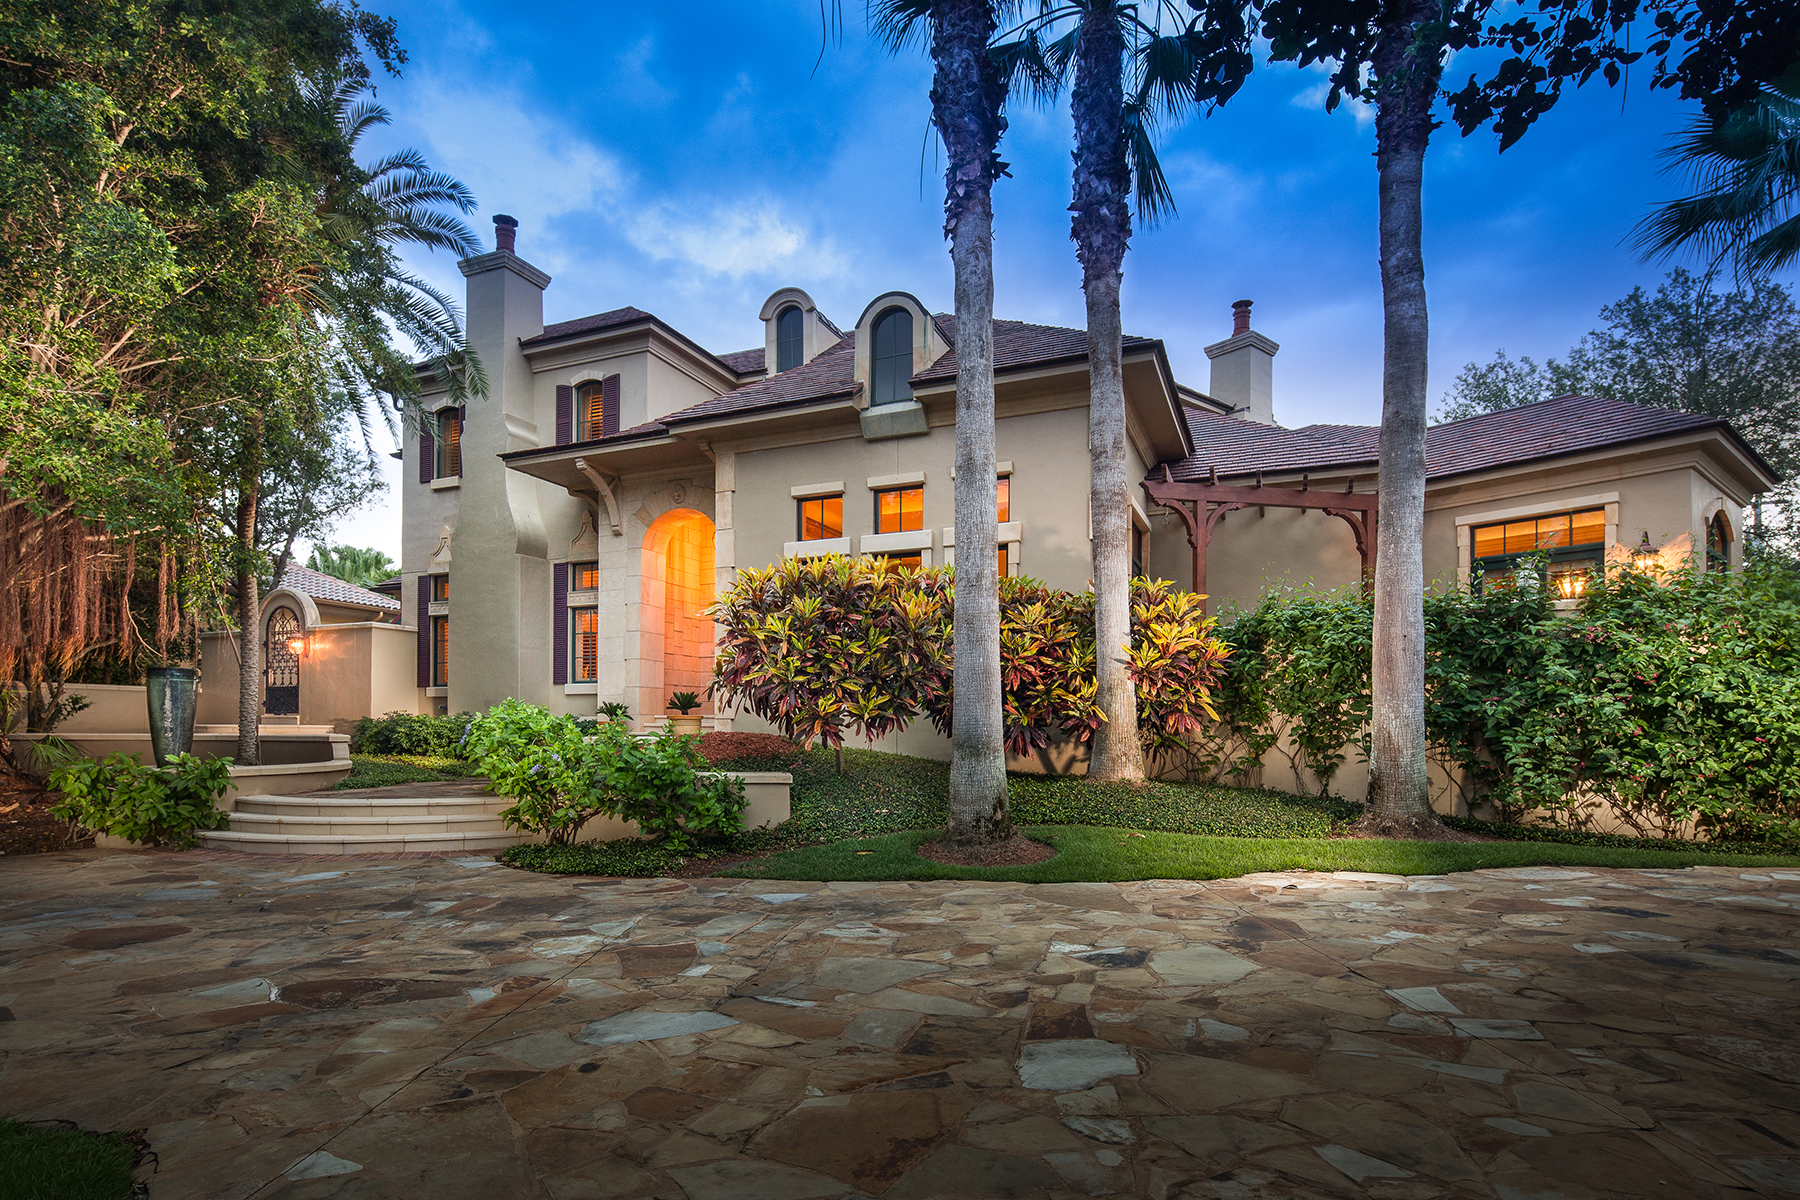 Casa Unifamiliar por un Venta en Naples 3200 Gordon Dr Port Royal, Naples, Florida, 34102 Estados Unidos